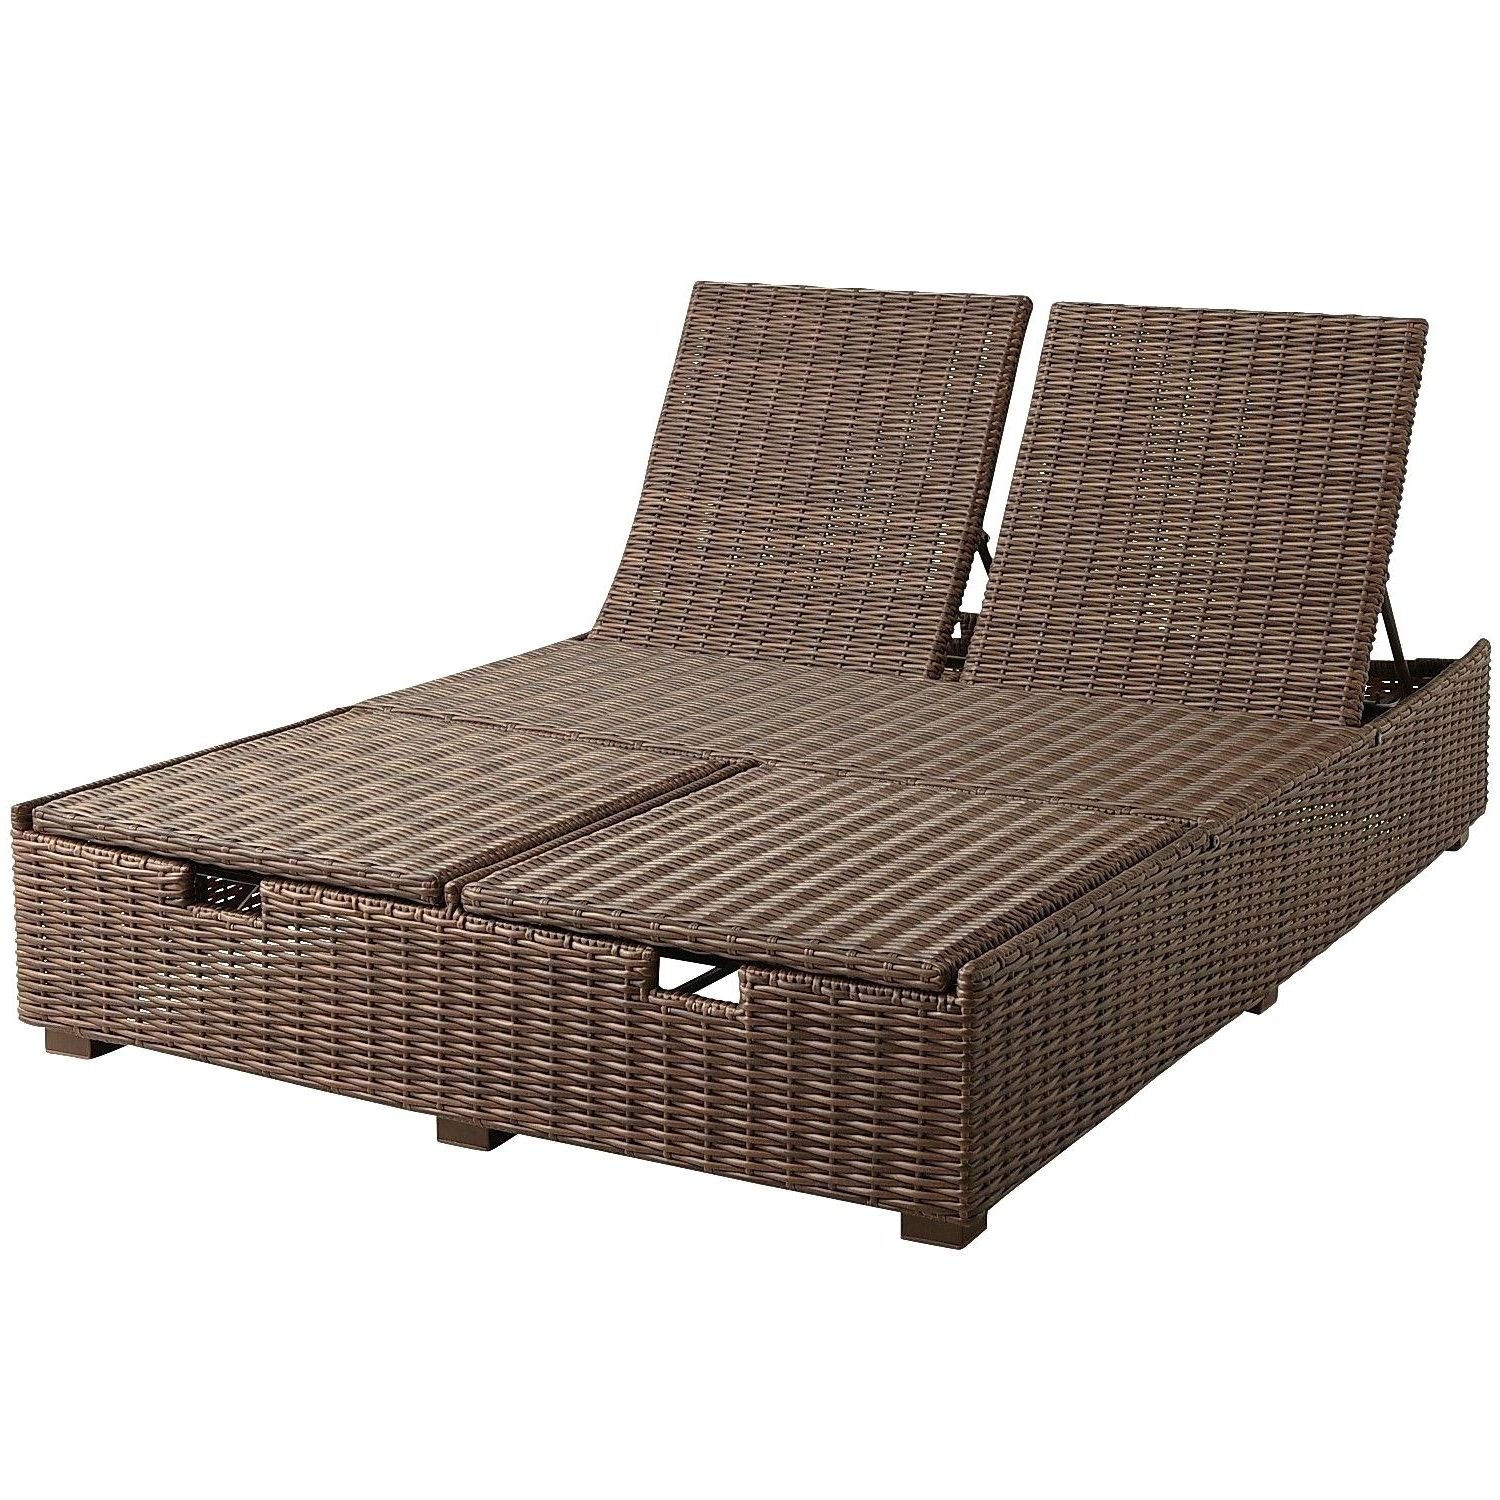 Wide Chaise Lounge Uk Extra Wide Outdoor Chaise Lounge Chairs Wide Within Trendy Extra Wide Outdoor Chaise Lounge Chairs (View 14 of 15)